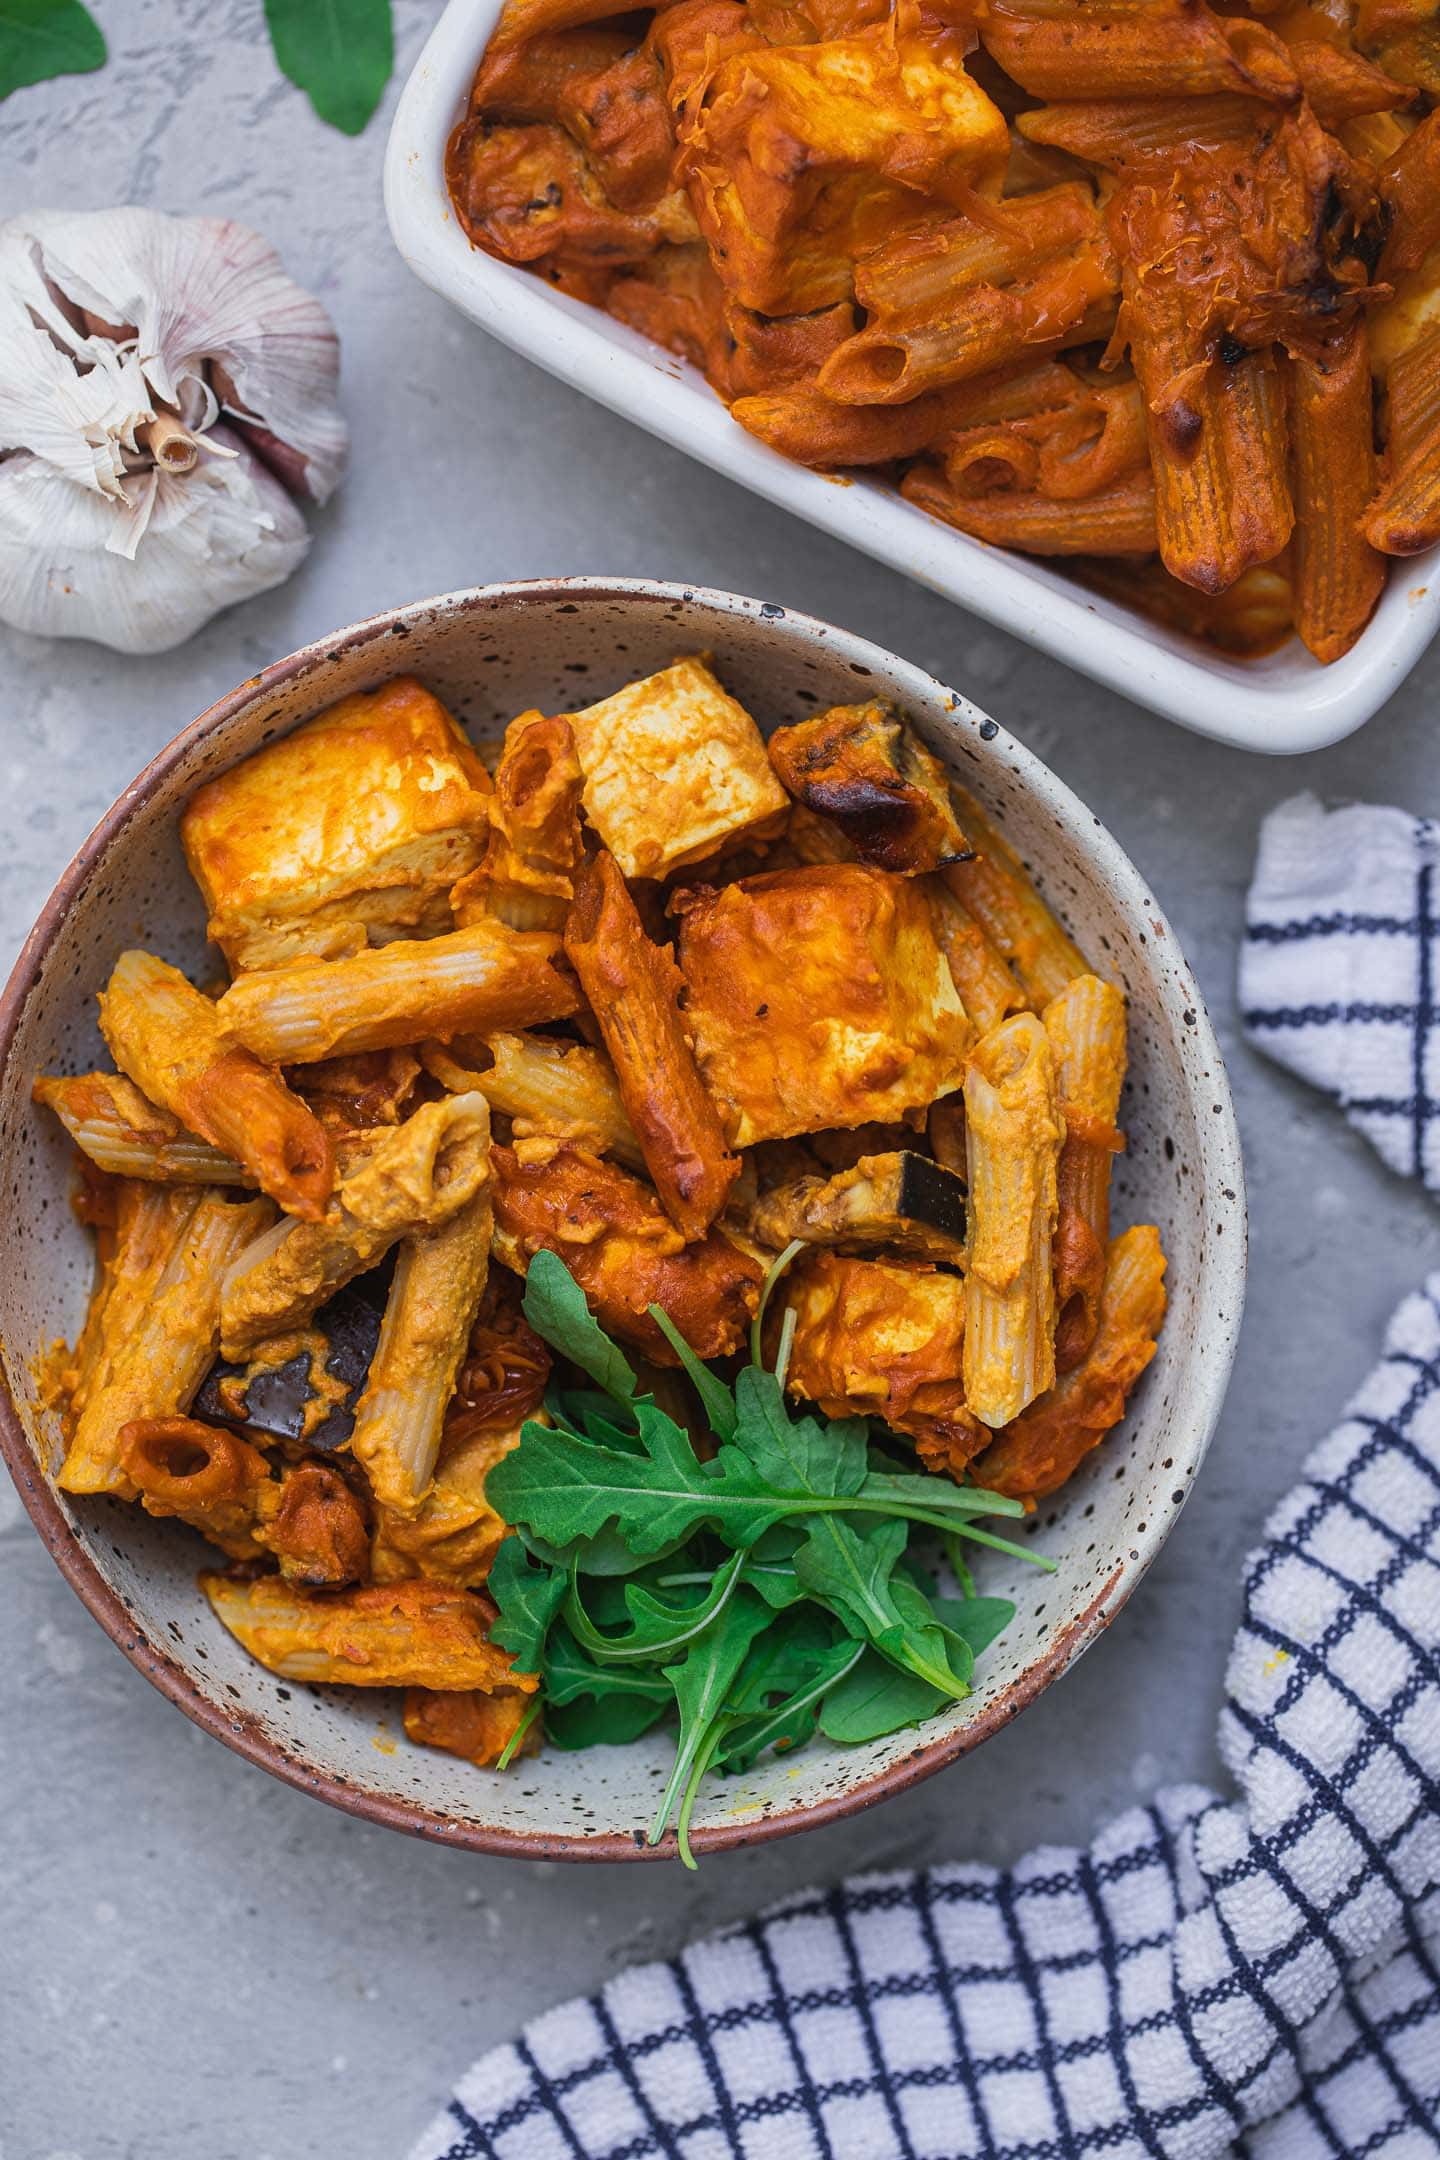 Pasta bake in a bowl with aubergine, tofu and leafy greens